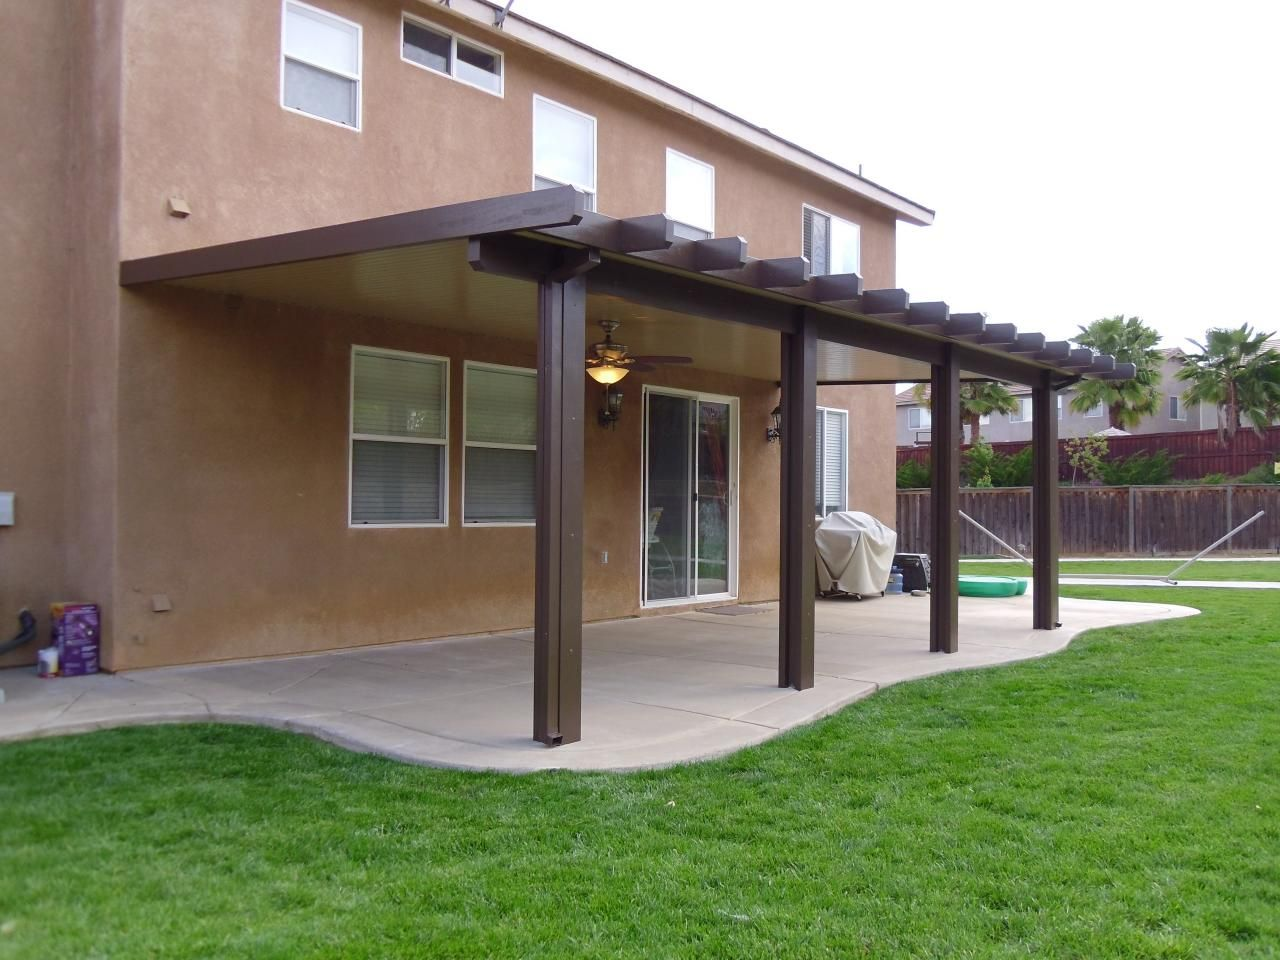 Good Make Your Shady Patio With Alumawood Patio Covers Ideas: Cool Alumawood  Patio Covers In Brown